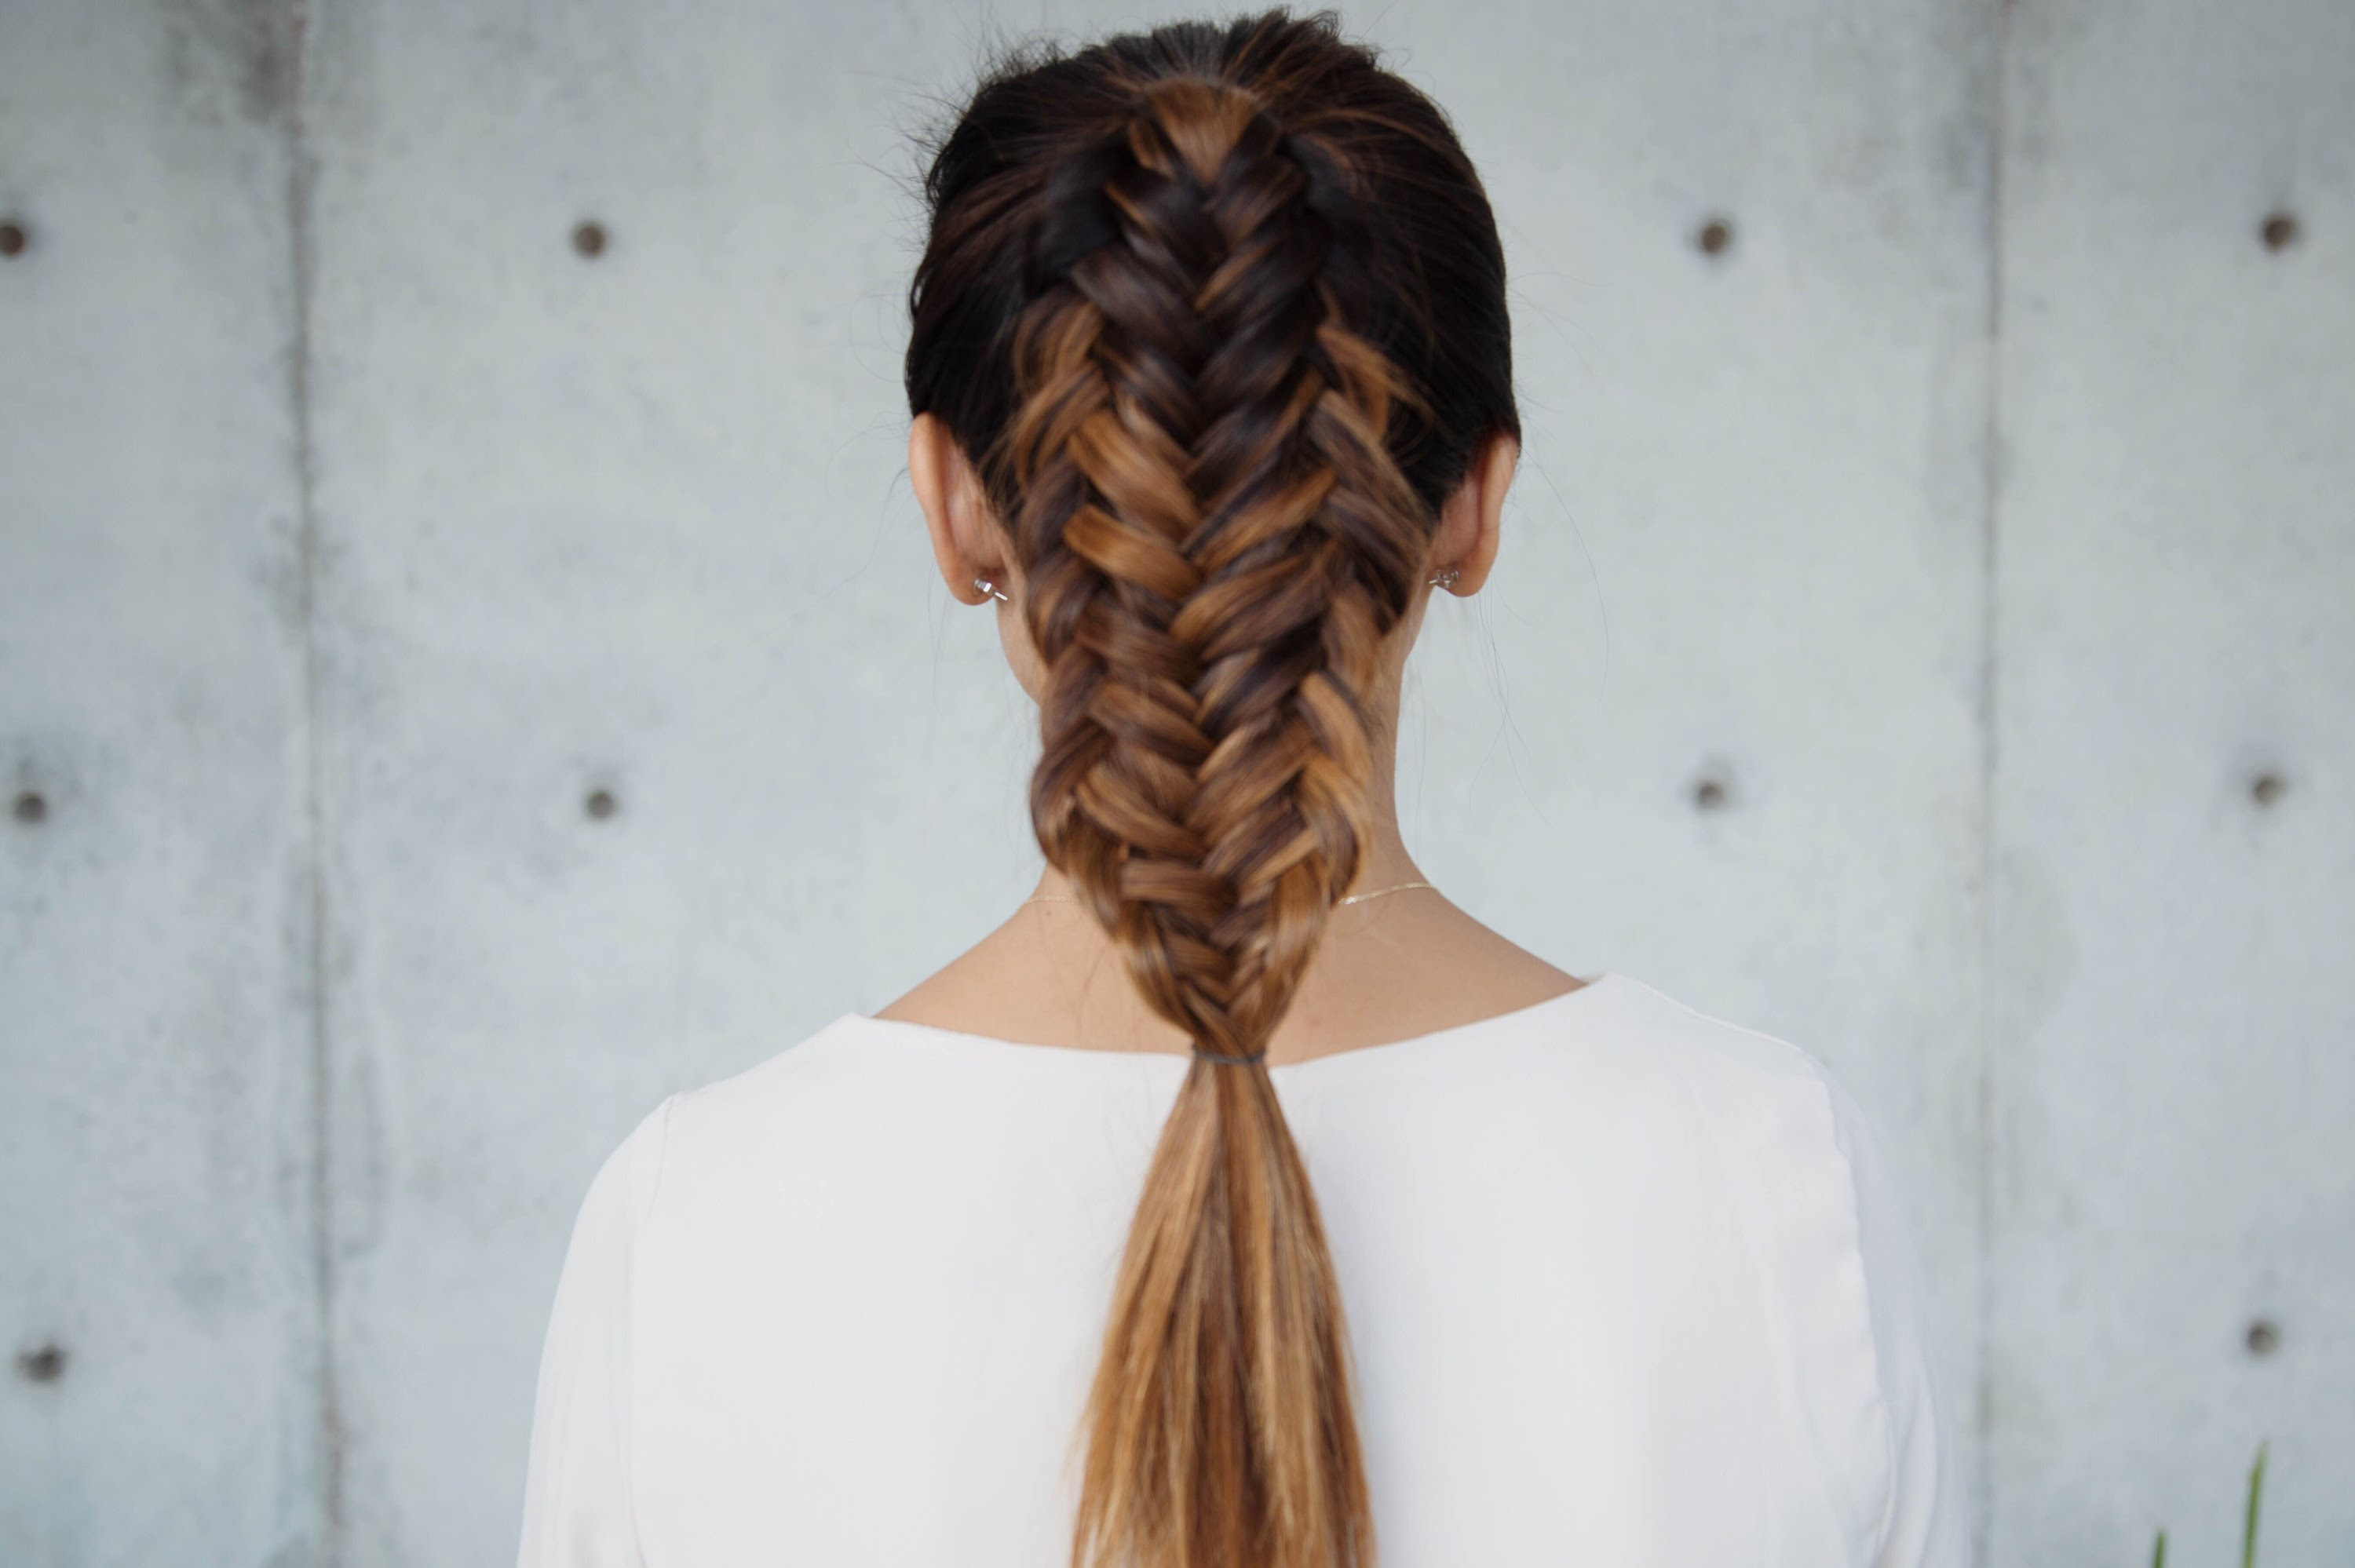 Fishtail Braid Top 25 Beautiful Fishtail Braids